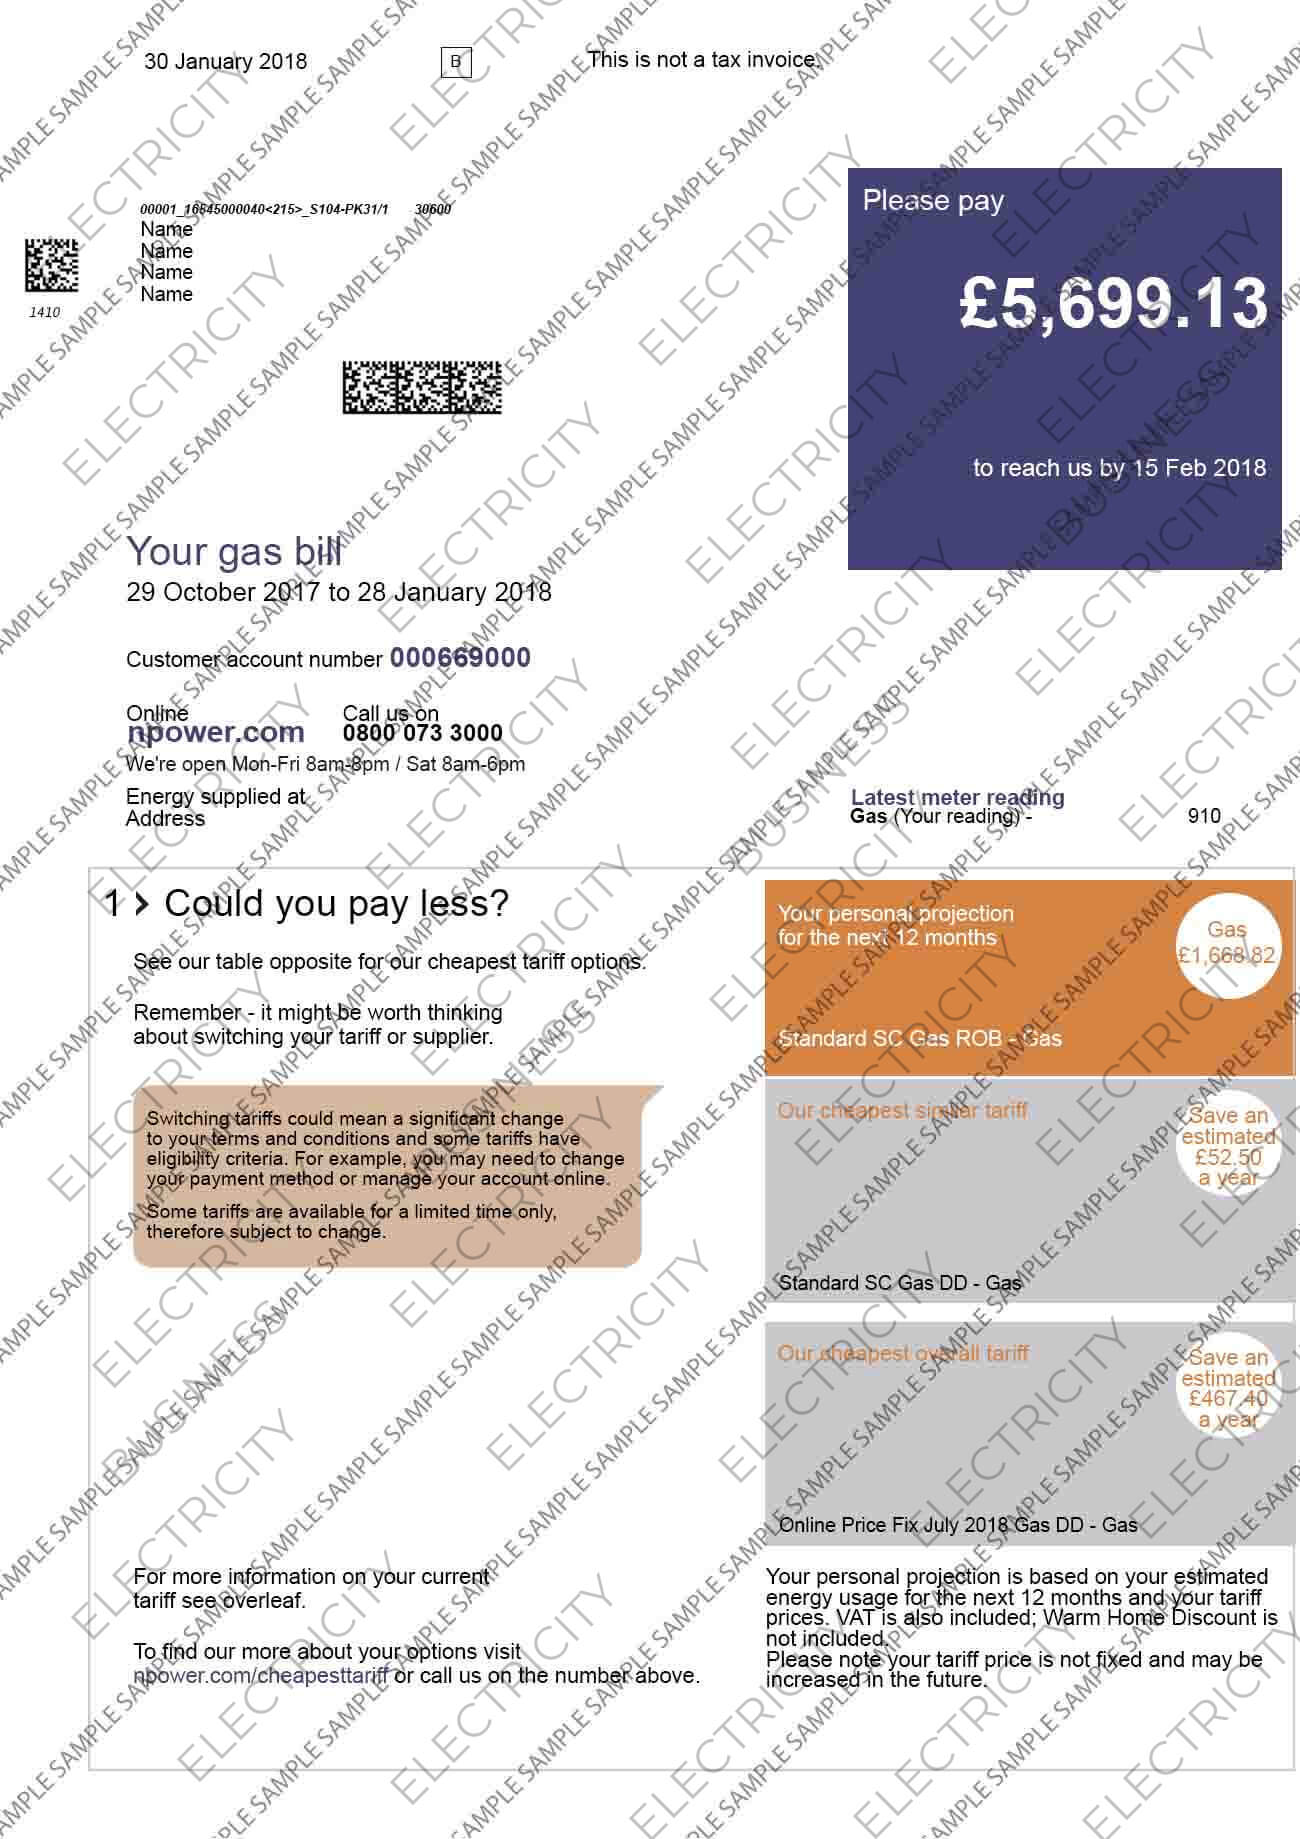 Npower Electricity Utility Bill